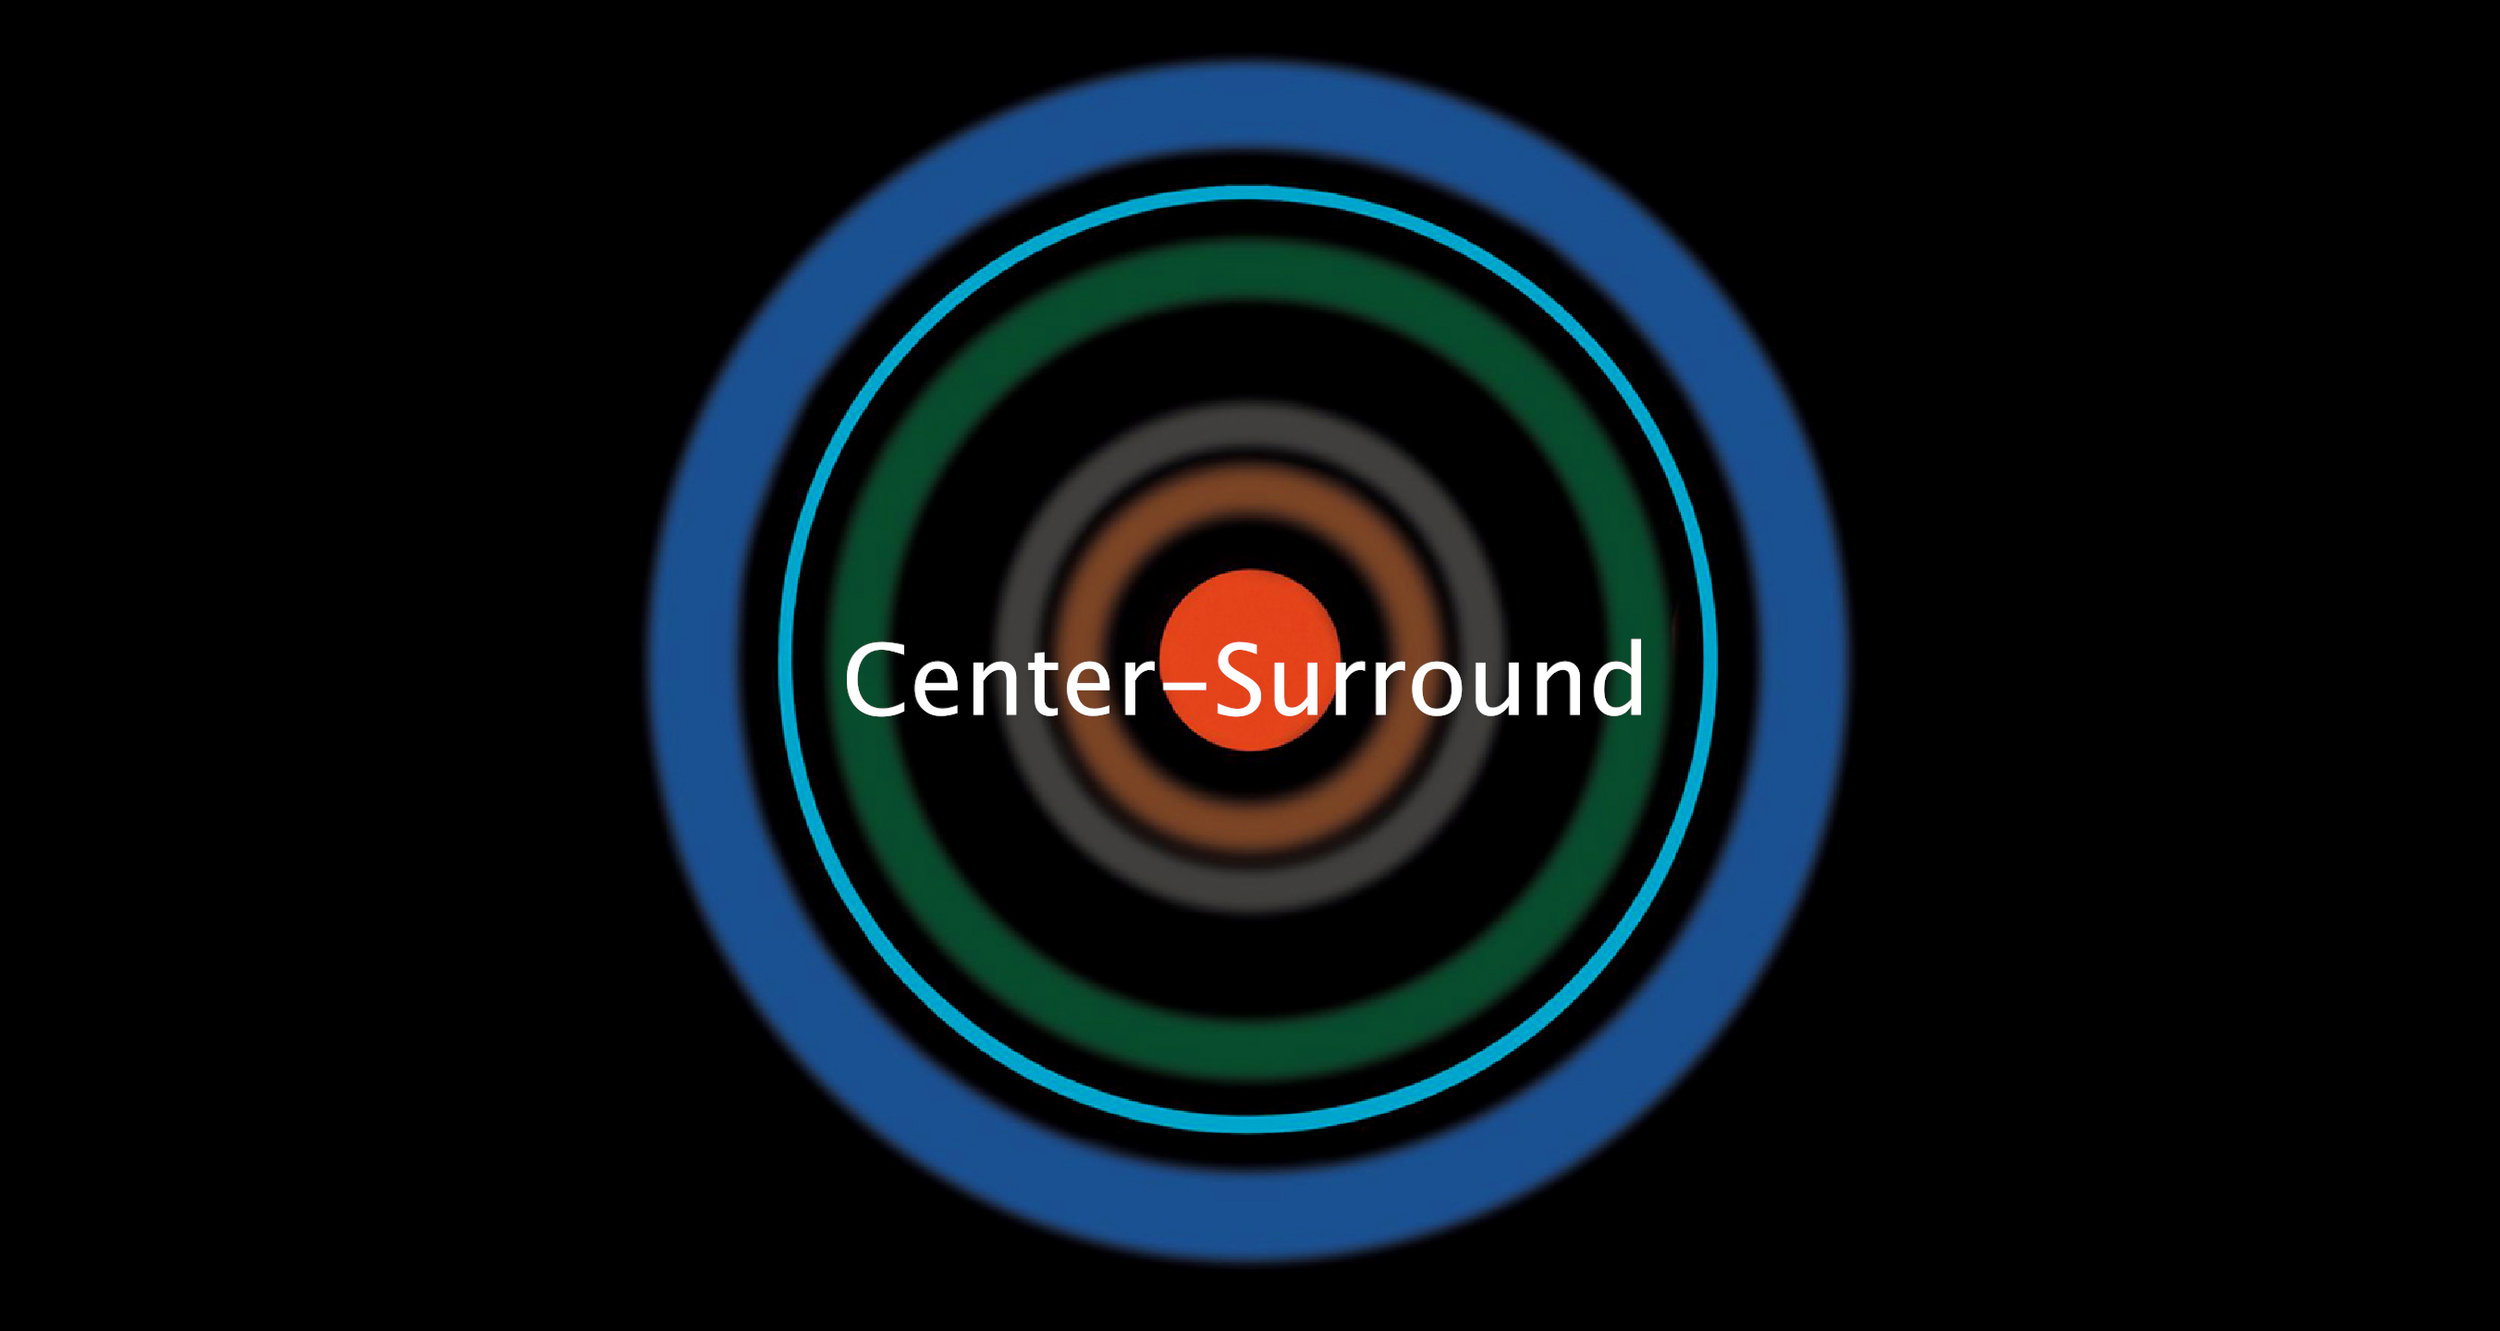 Center-Surround